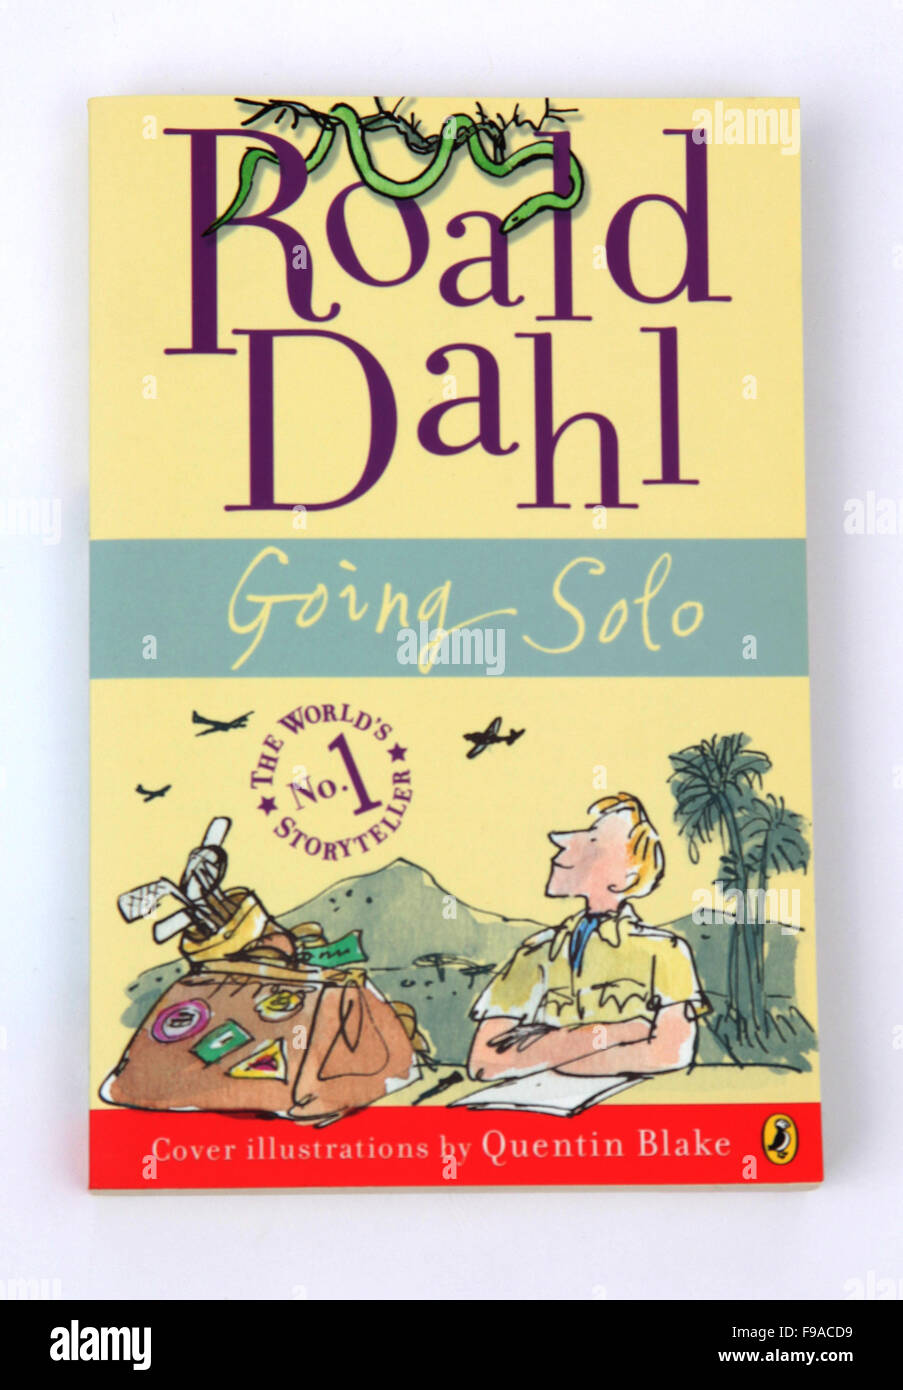 Going Solo, a children's book by Roald Dahl - Stock Image